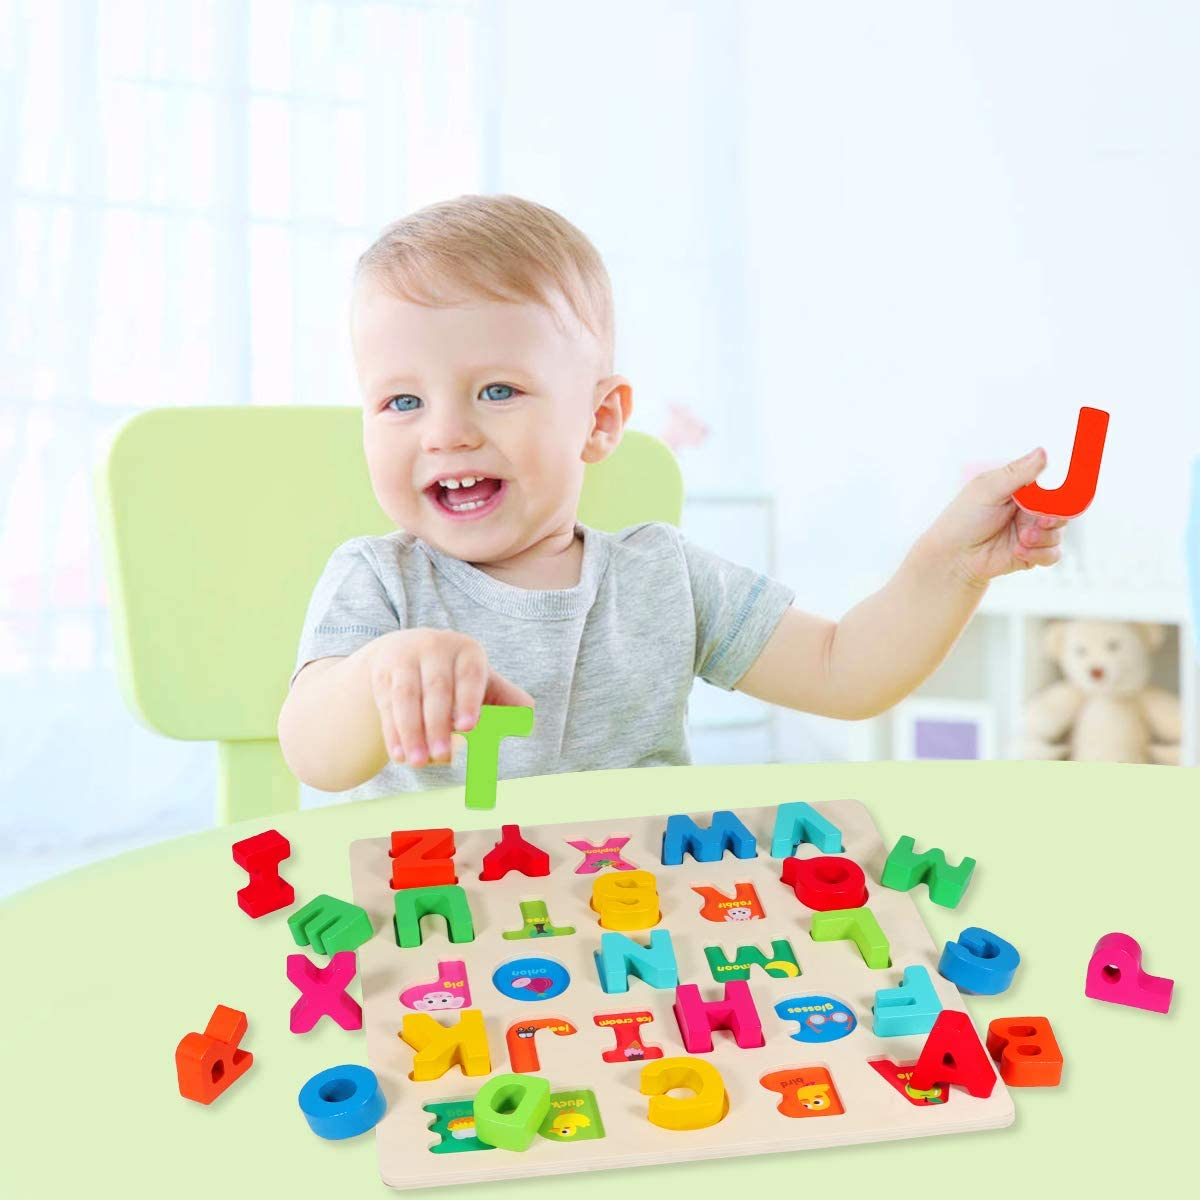 Apfity Letters Peg Board ABC Blocks Matching Game Learning Puzzles Educational Toy for Kids Ages 2 3 4 5 Wooden Alphabet Puzzle for Toddlers